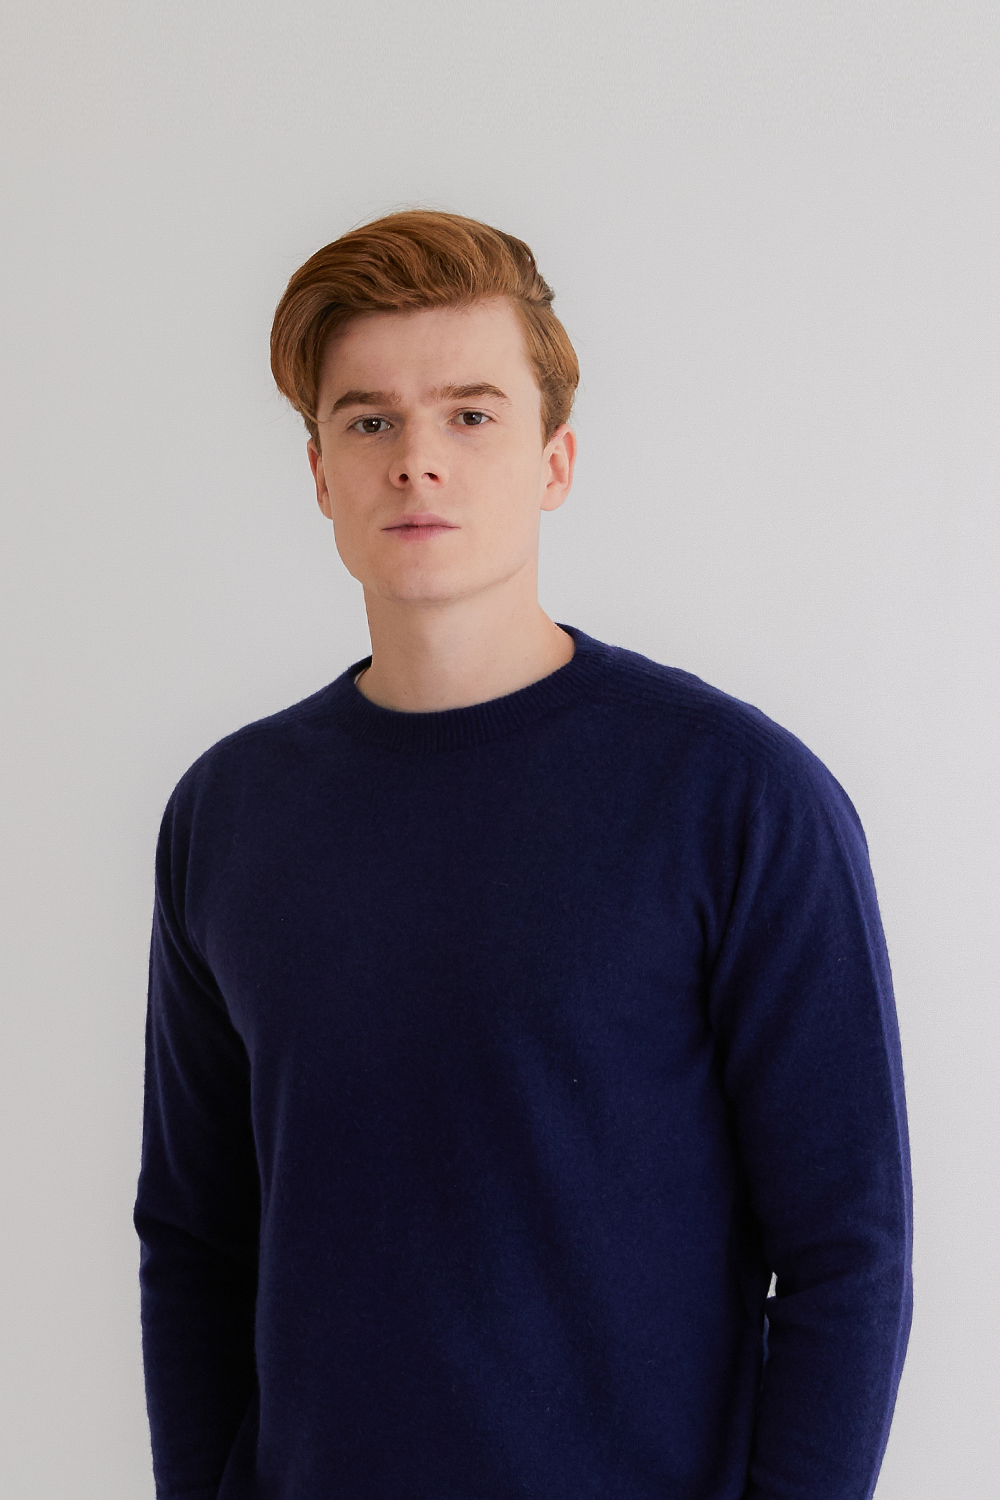 프리미엄 캐시미어 100 남성 라운드넥 스웨터 [Pure cashmere100 whole-garment knitting roundneck pullover - Royal blue navy]